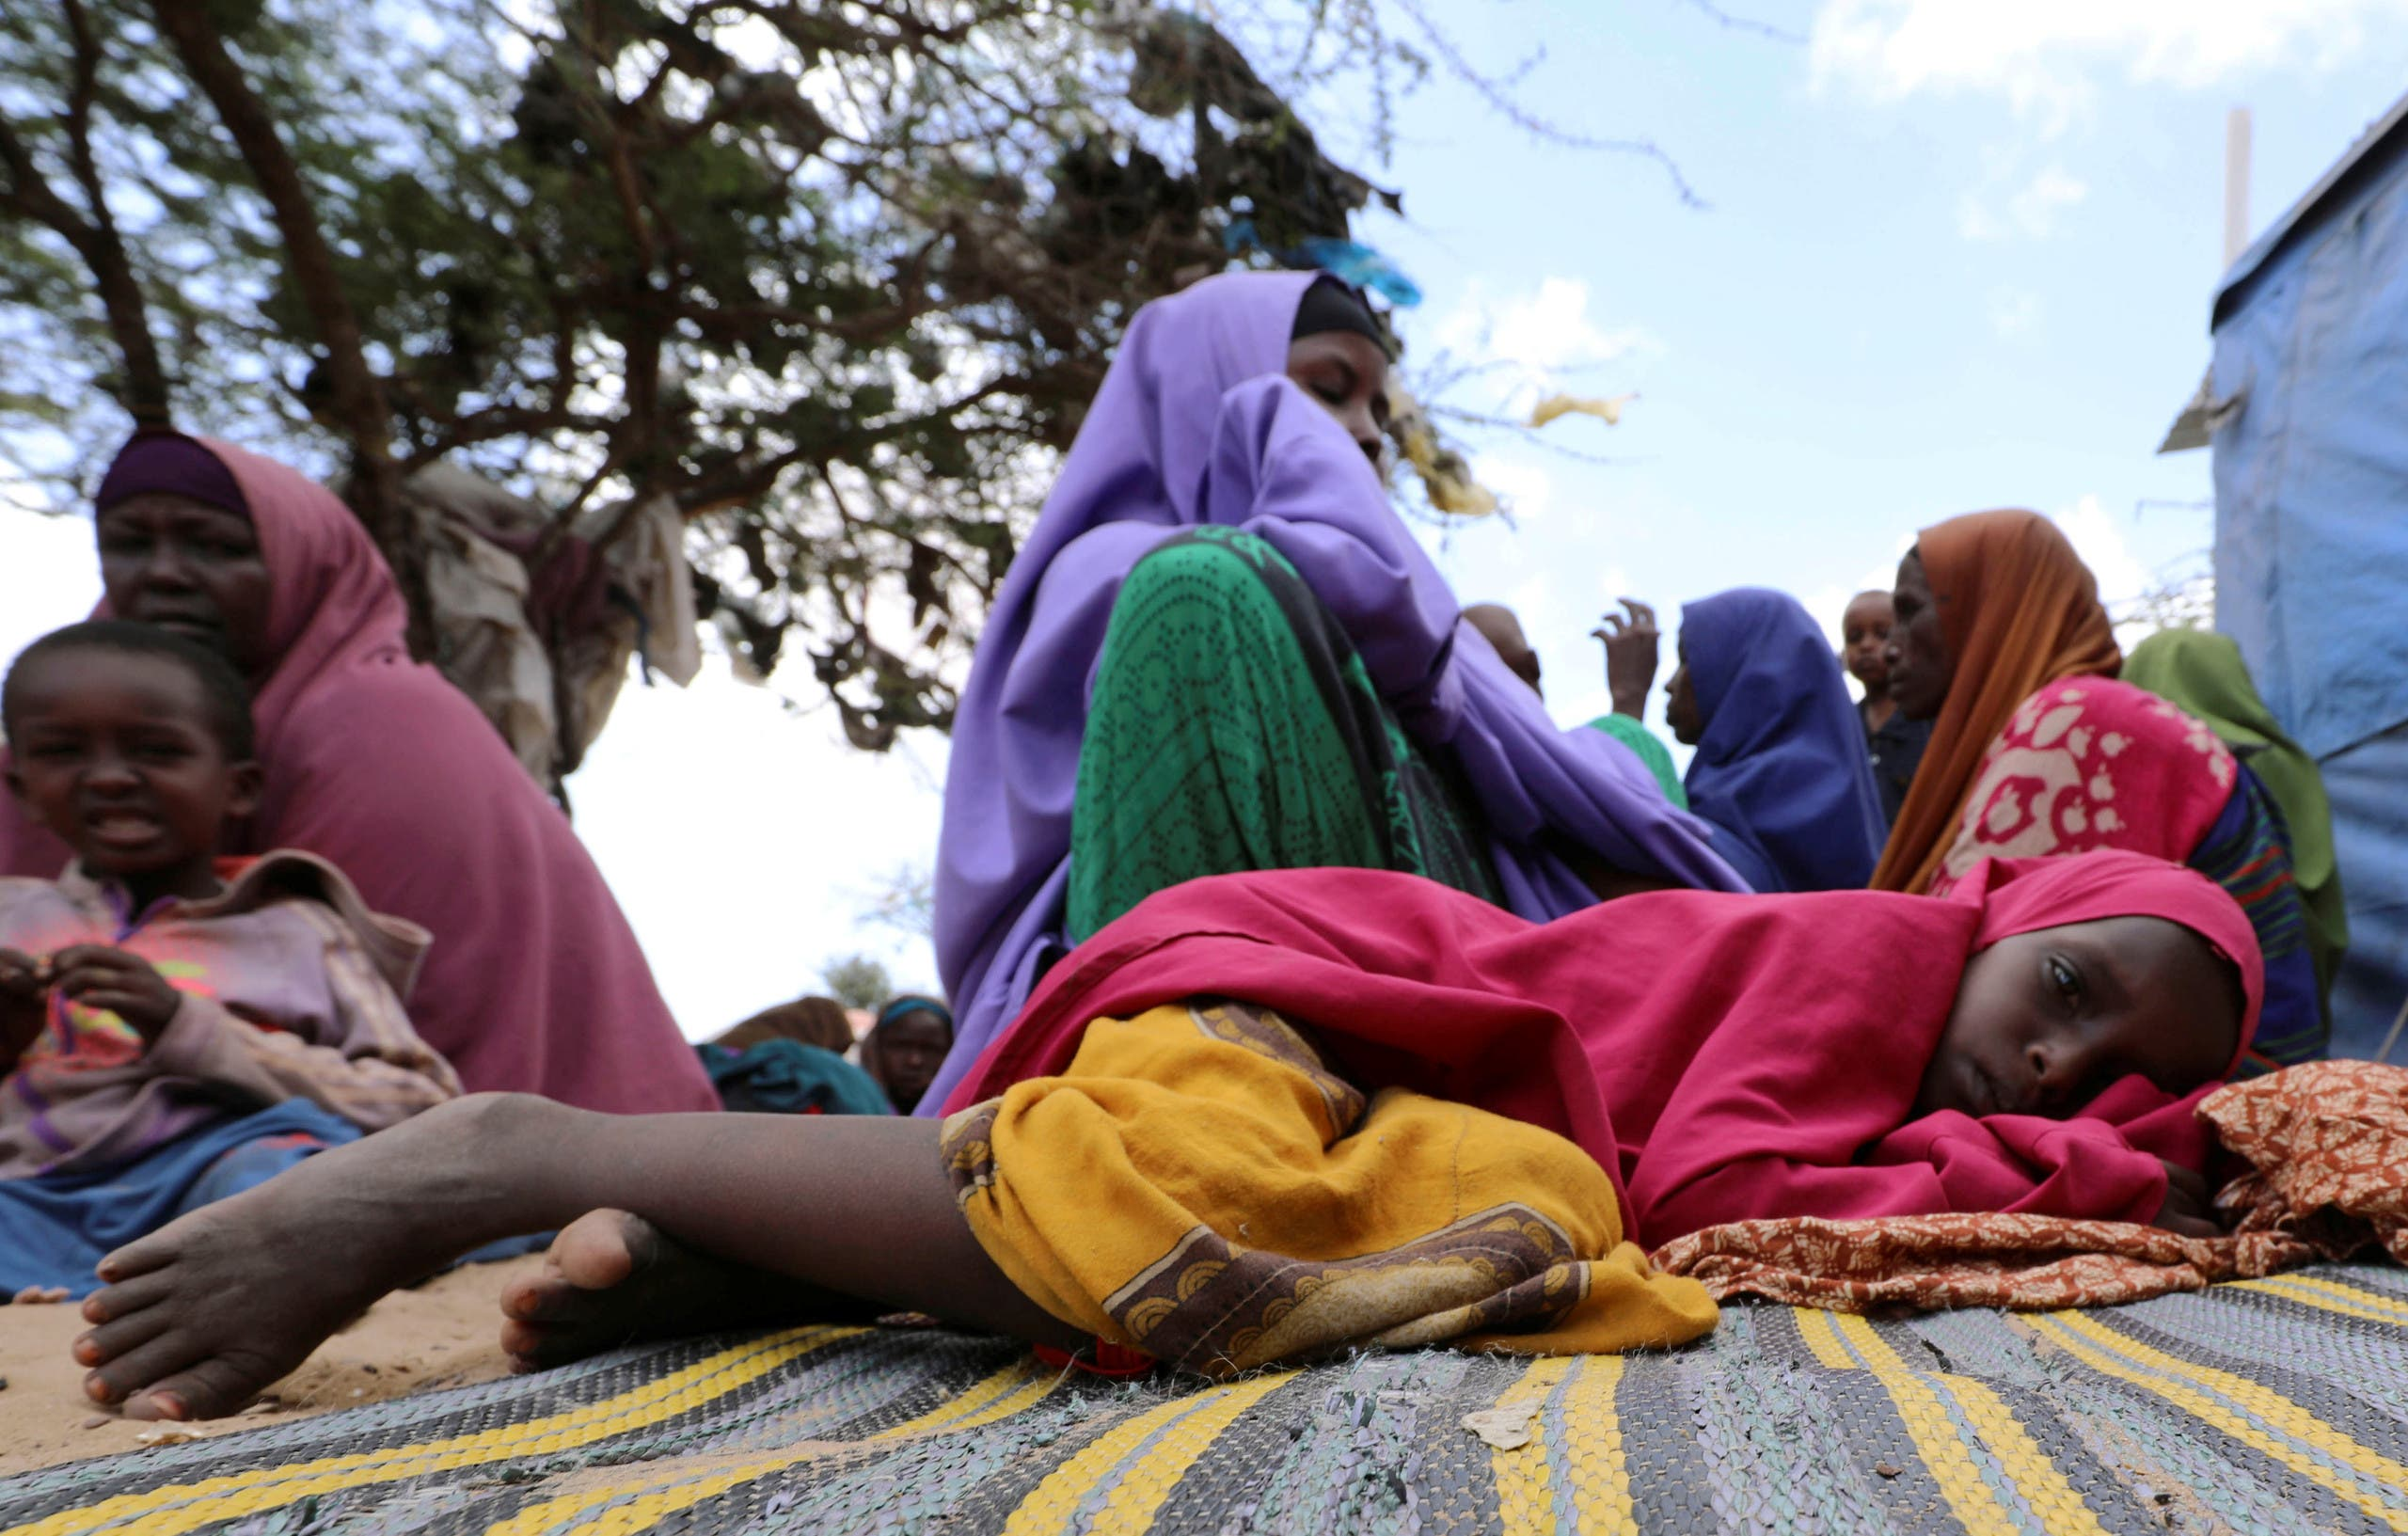 A Somali girl rests at an IDP (internally displaced person) camp near Mogadishu, Somalia on March 12, 2020. (Reuters)